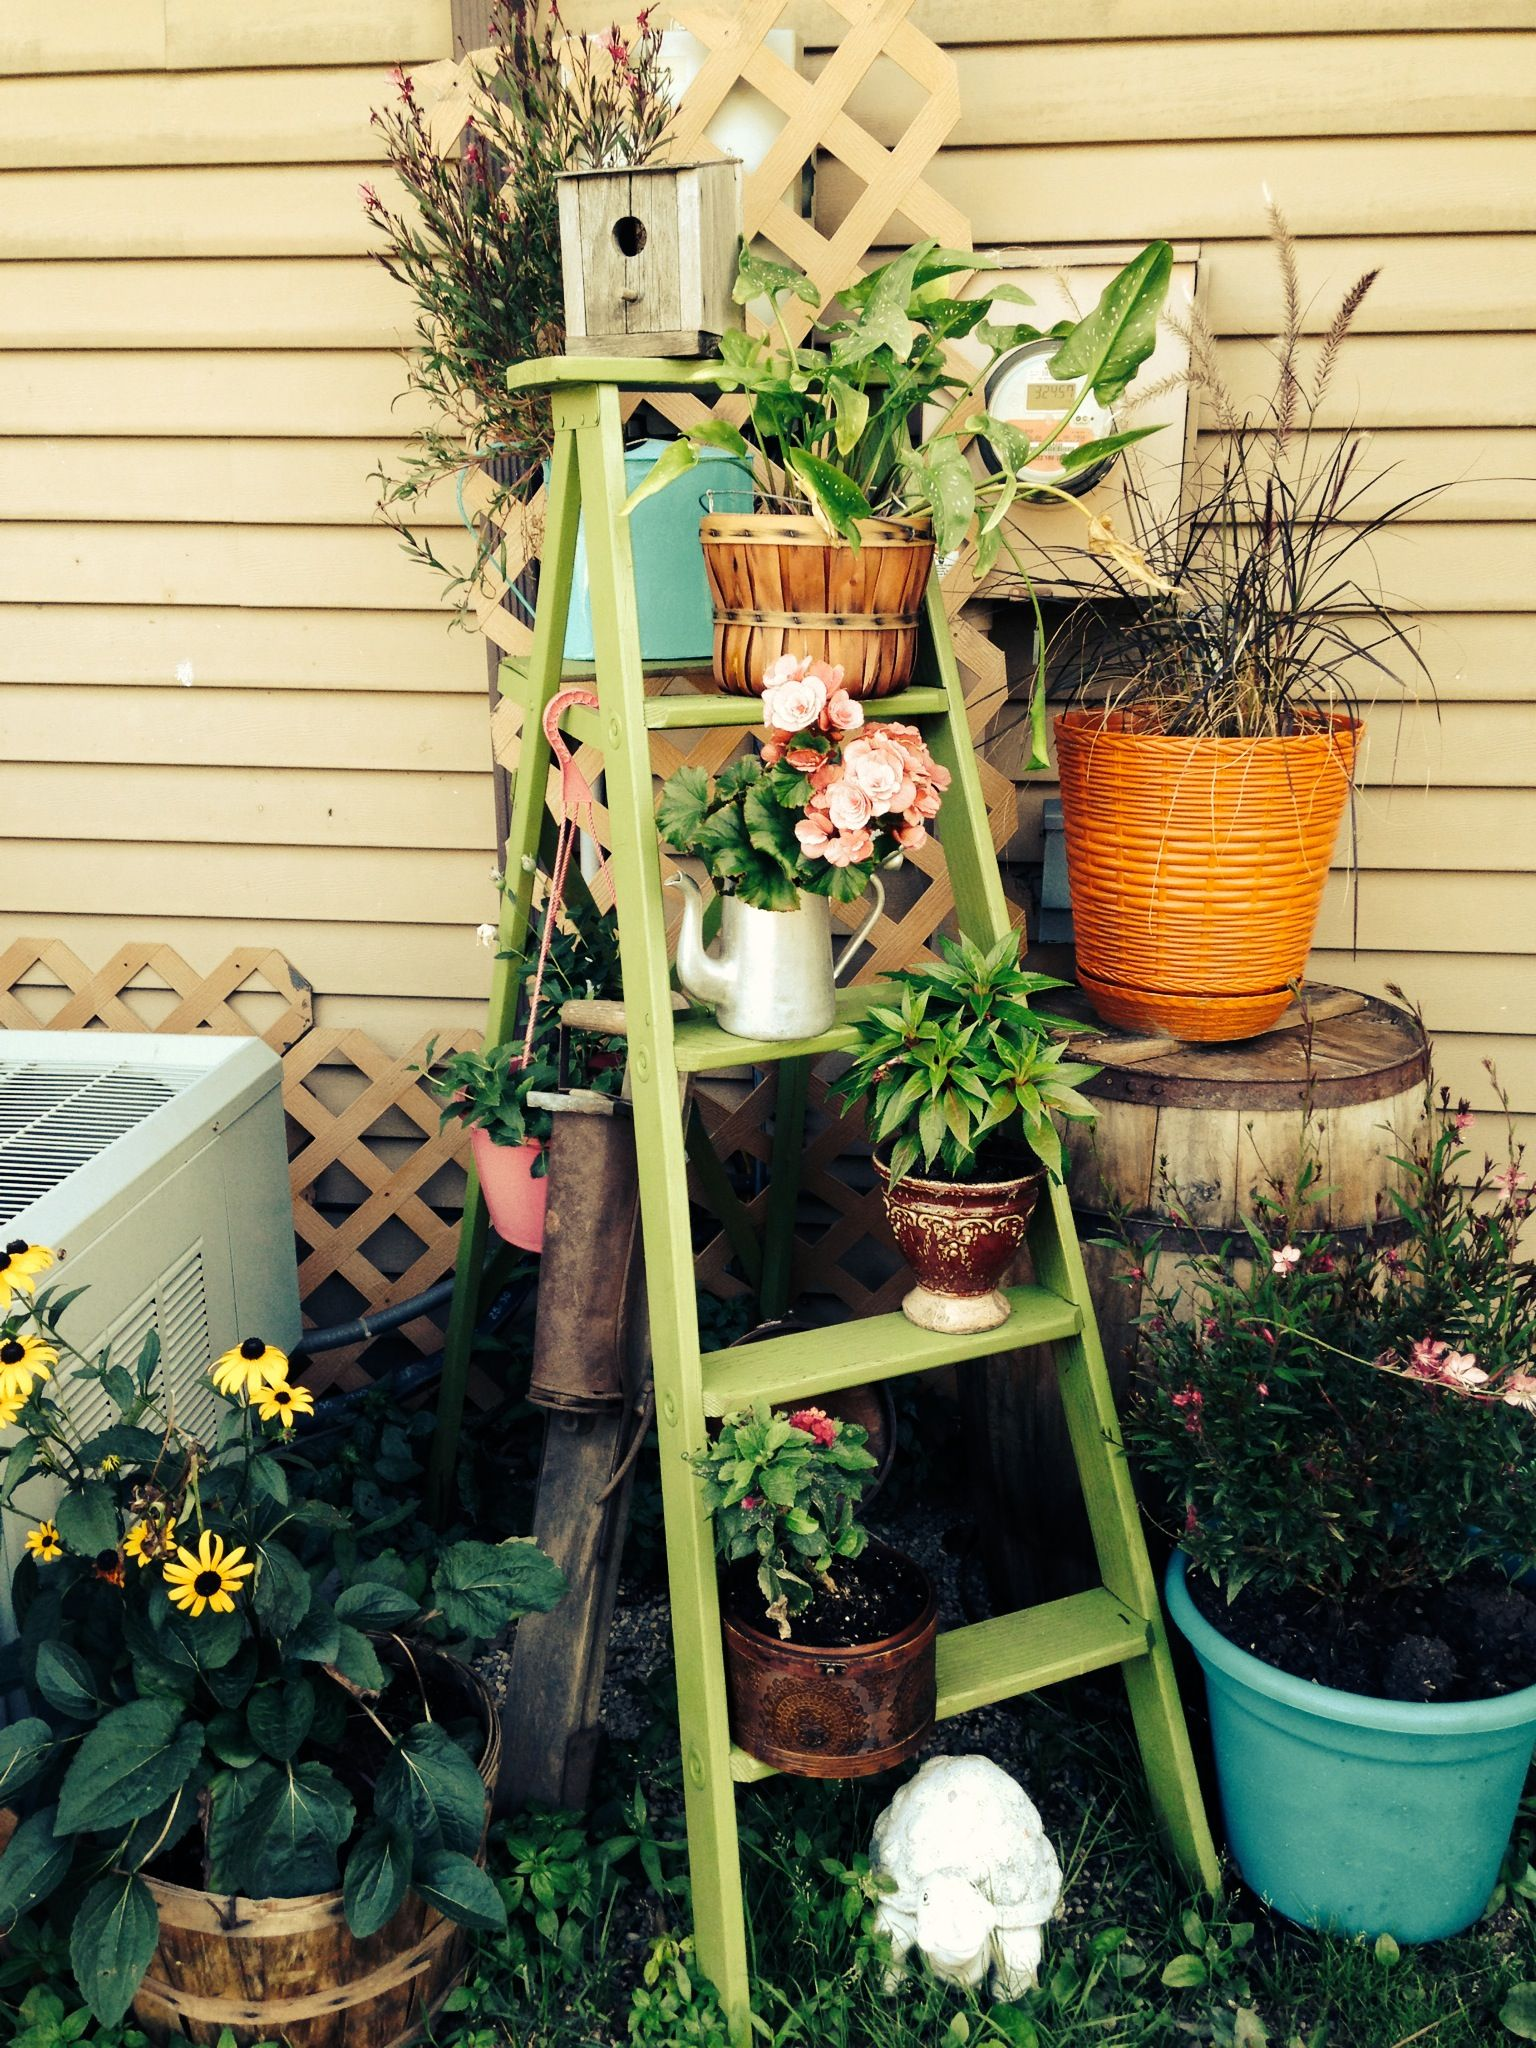 Garden Ladder To Hide The Meter And Cable Boxes